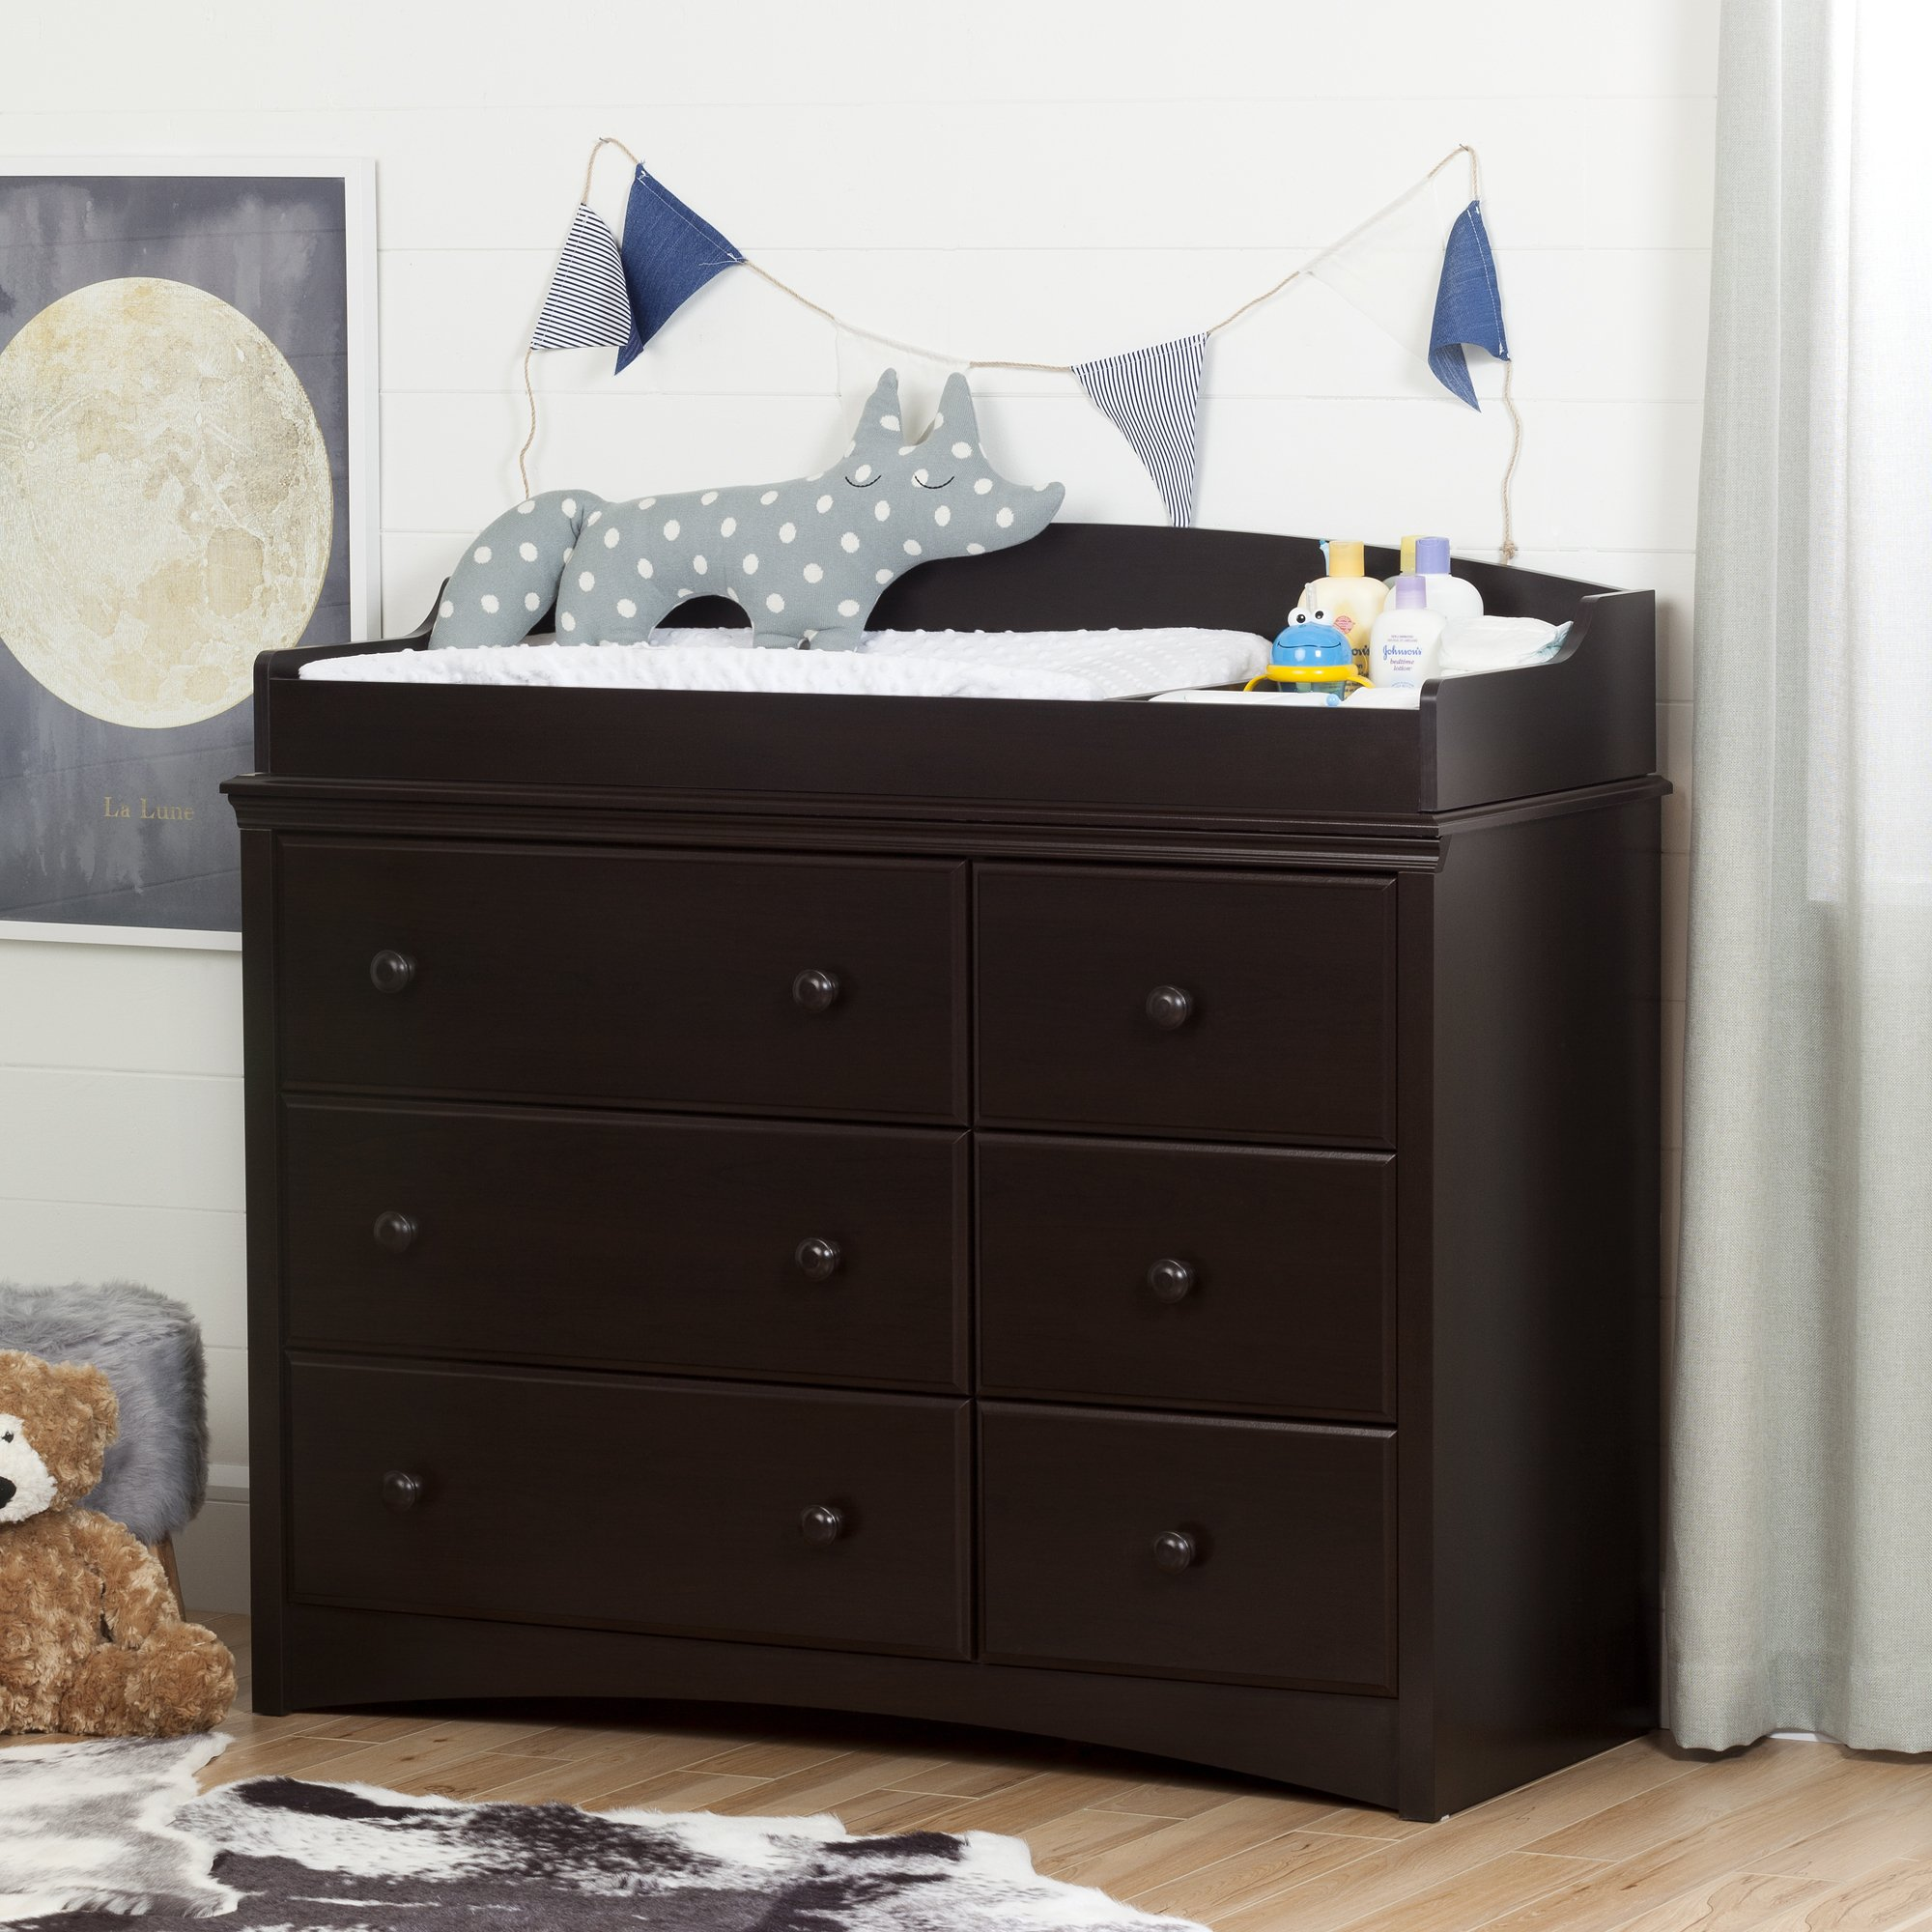 South Shore Furniture Angel Changing Table with 6 Drawers, Espresso